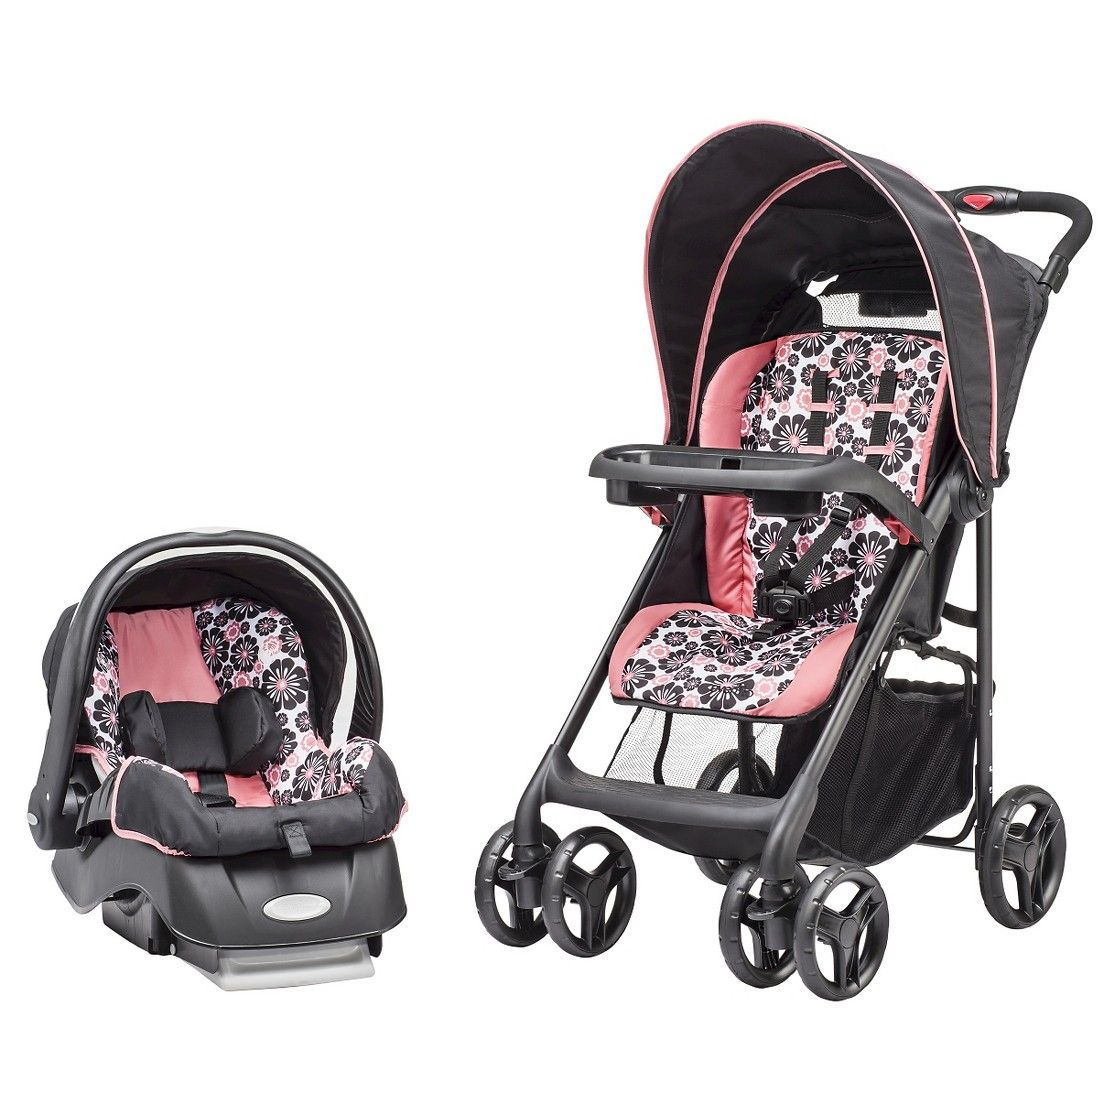 Evenflo JourneyLite Travel System Penelope (With images